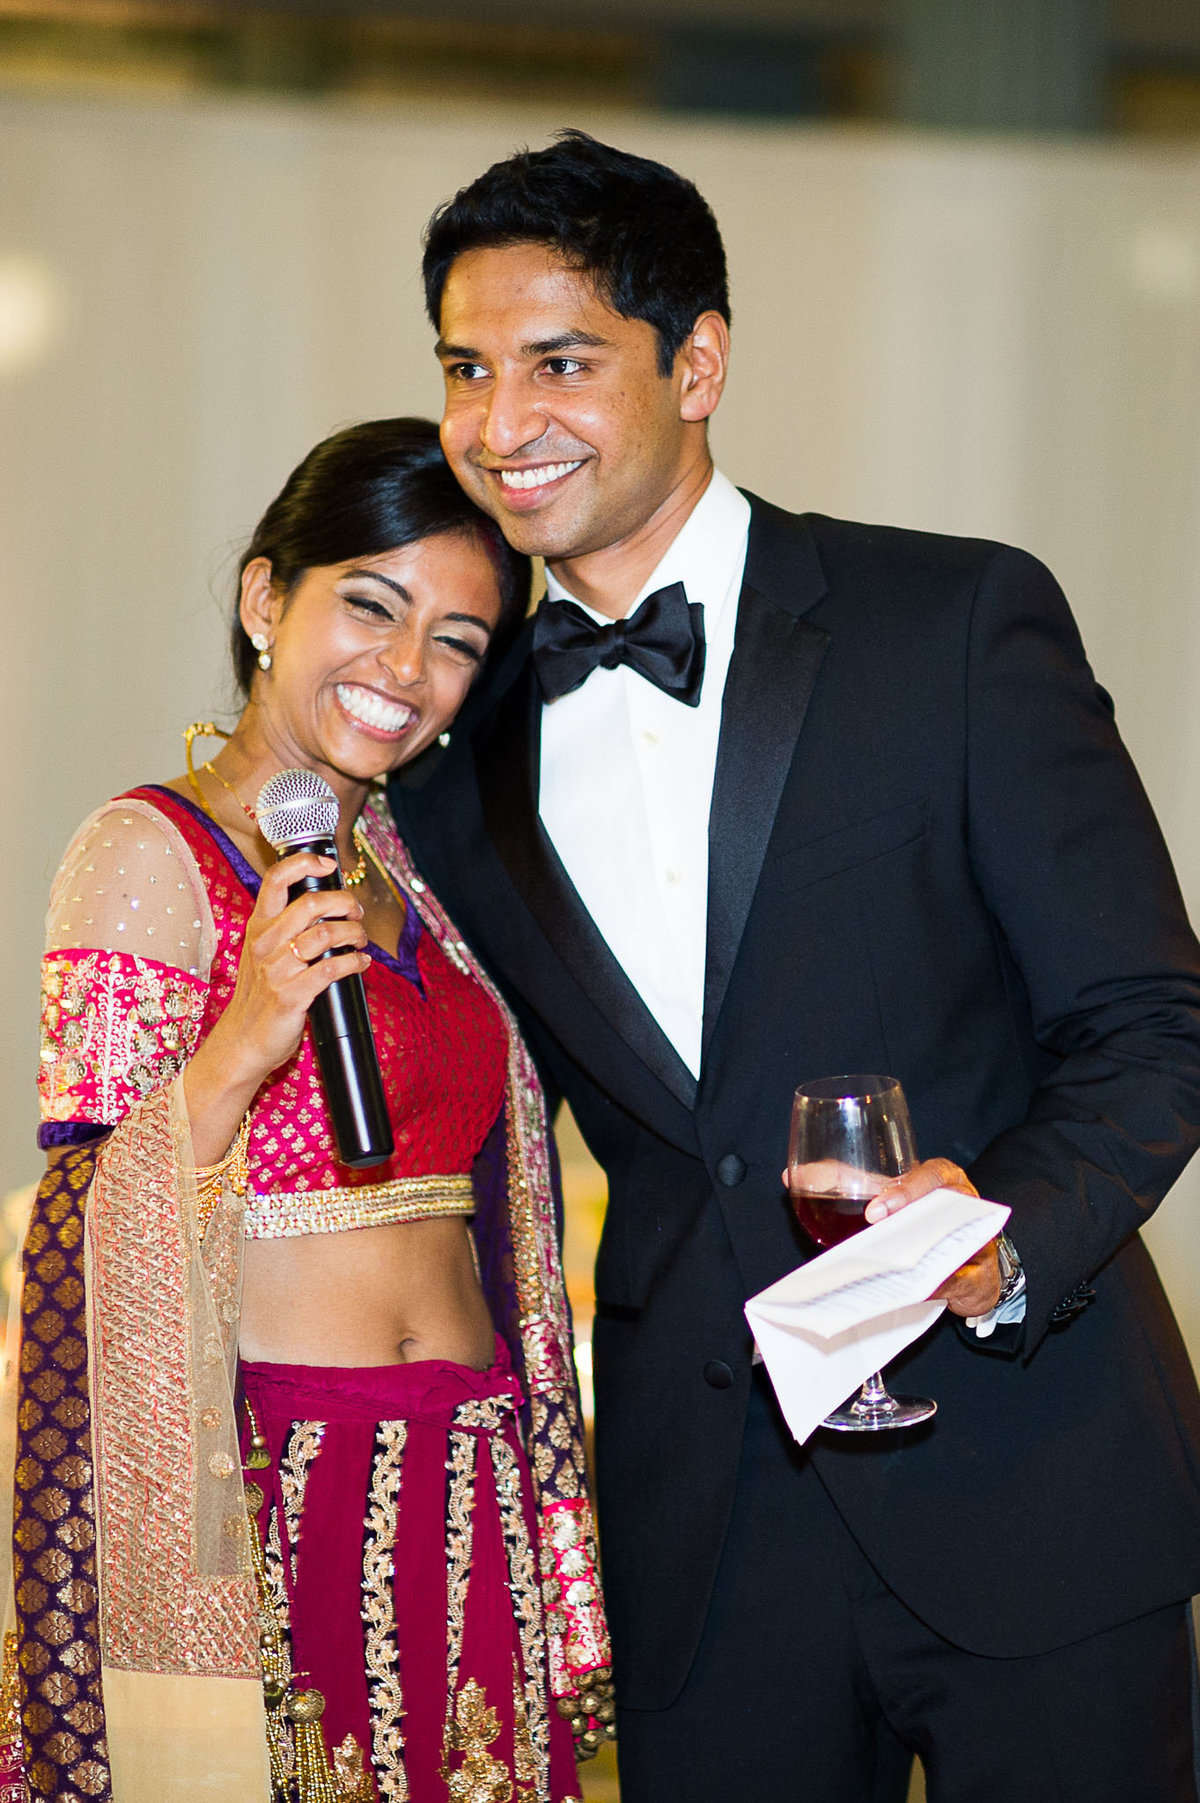 Harold-Washington-Library-South-Asian-Wedding-147